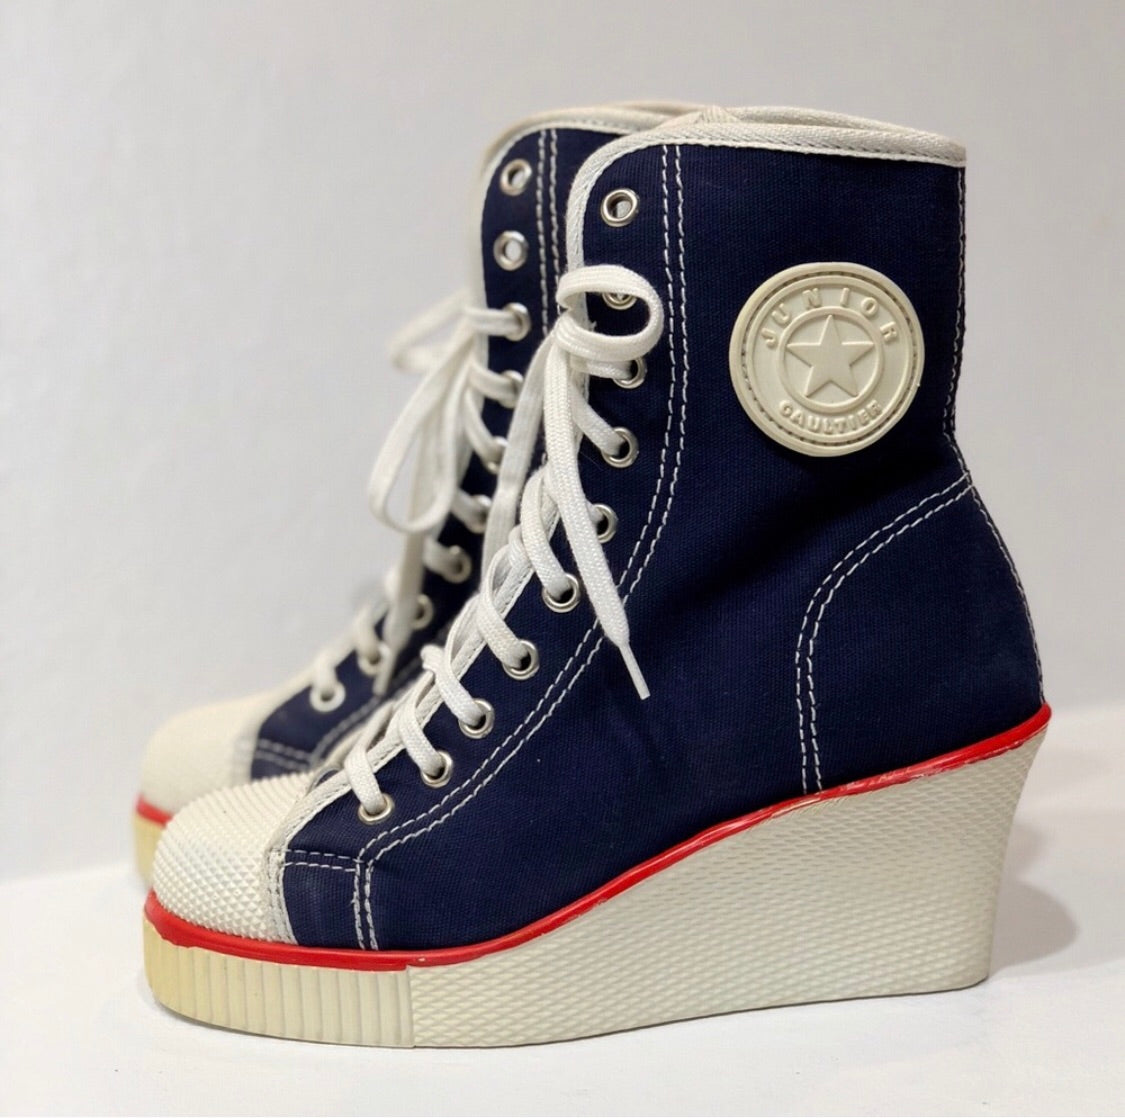 Junior Gaultier Vintage High Top Wedge Sneakers